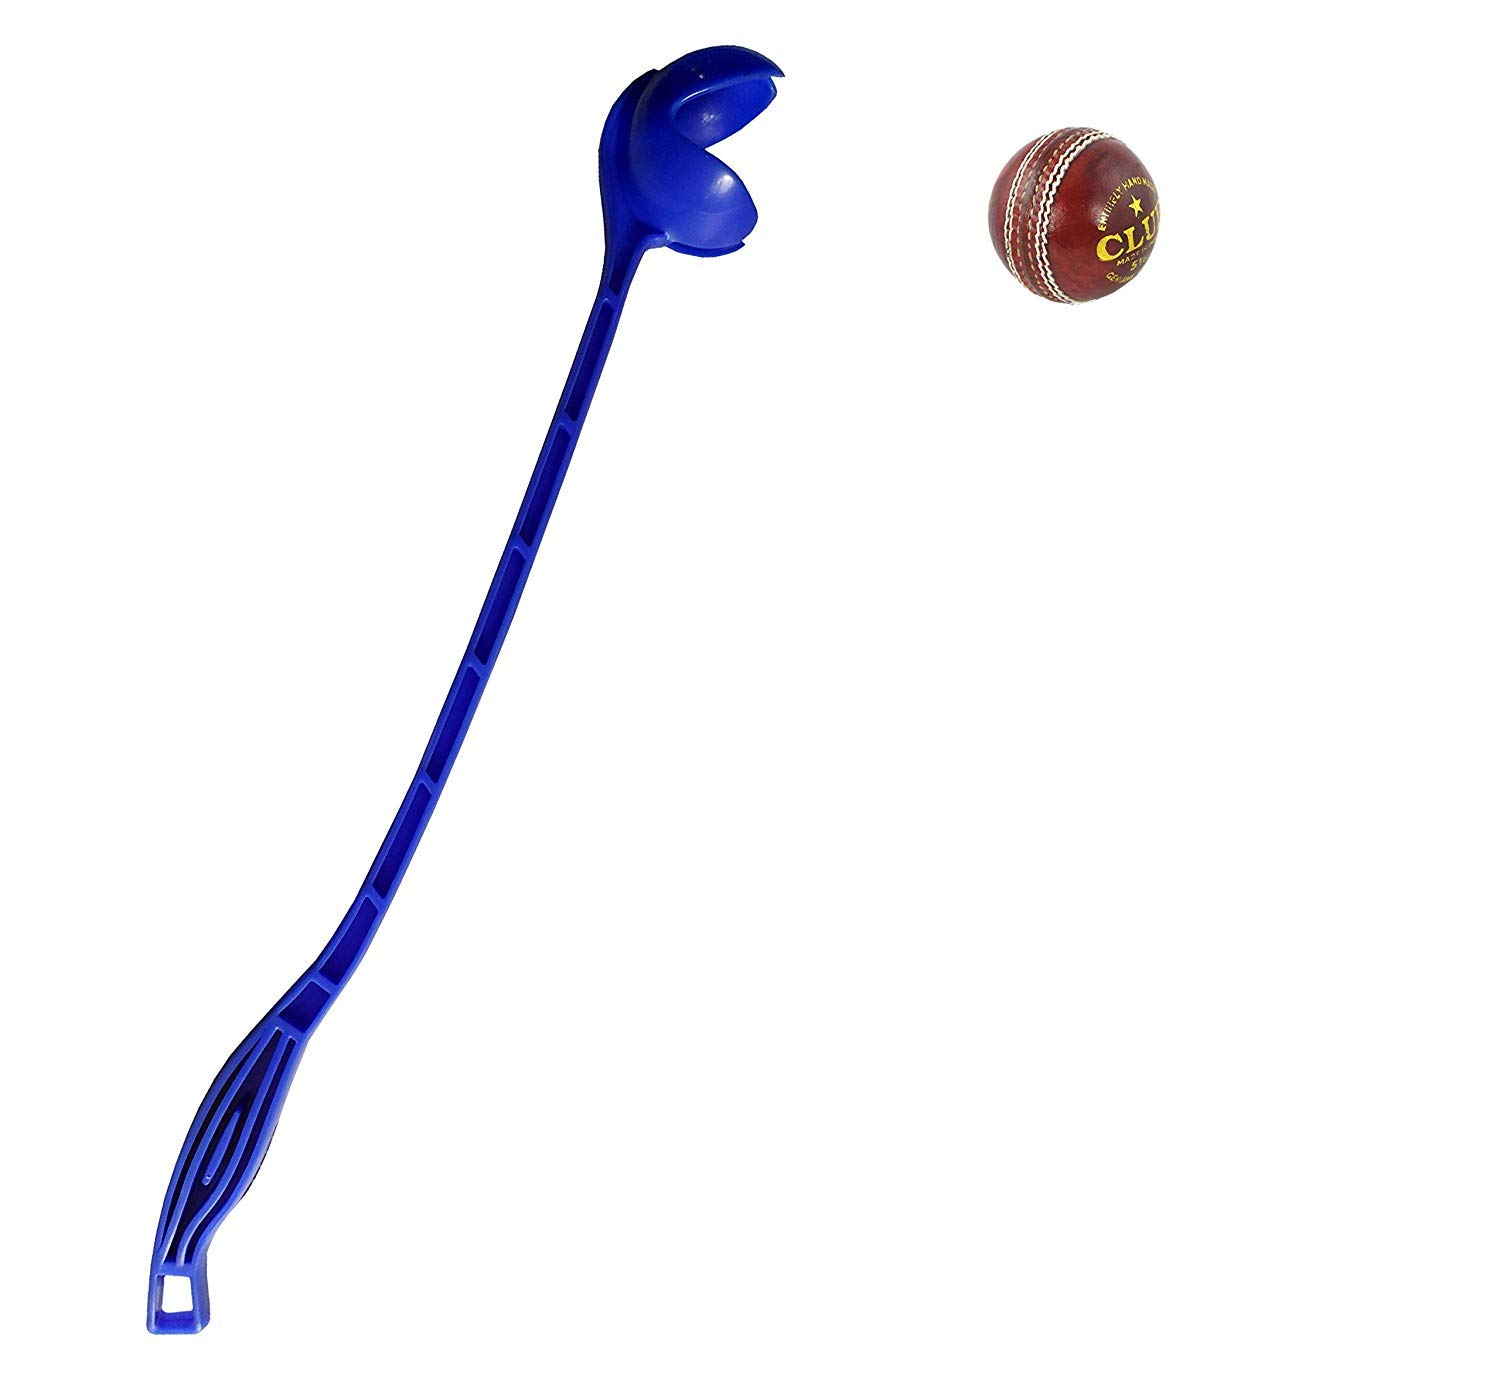 Blue Side Arm Cricket Ball ThrowerLeather Ball Thrower with Leather Ball US